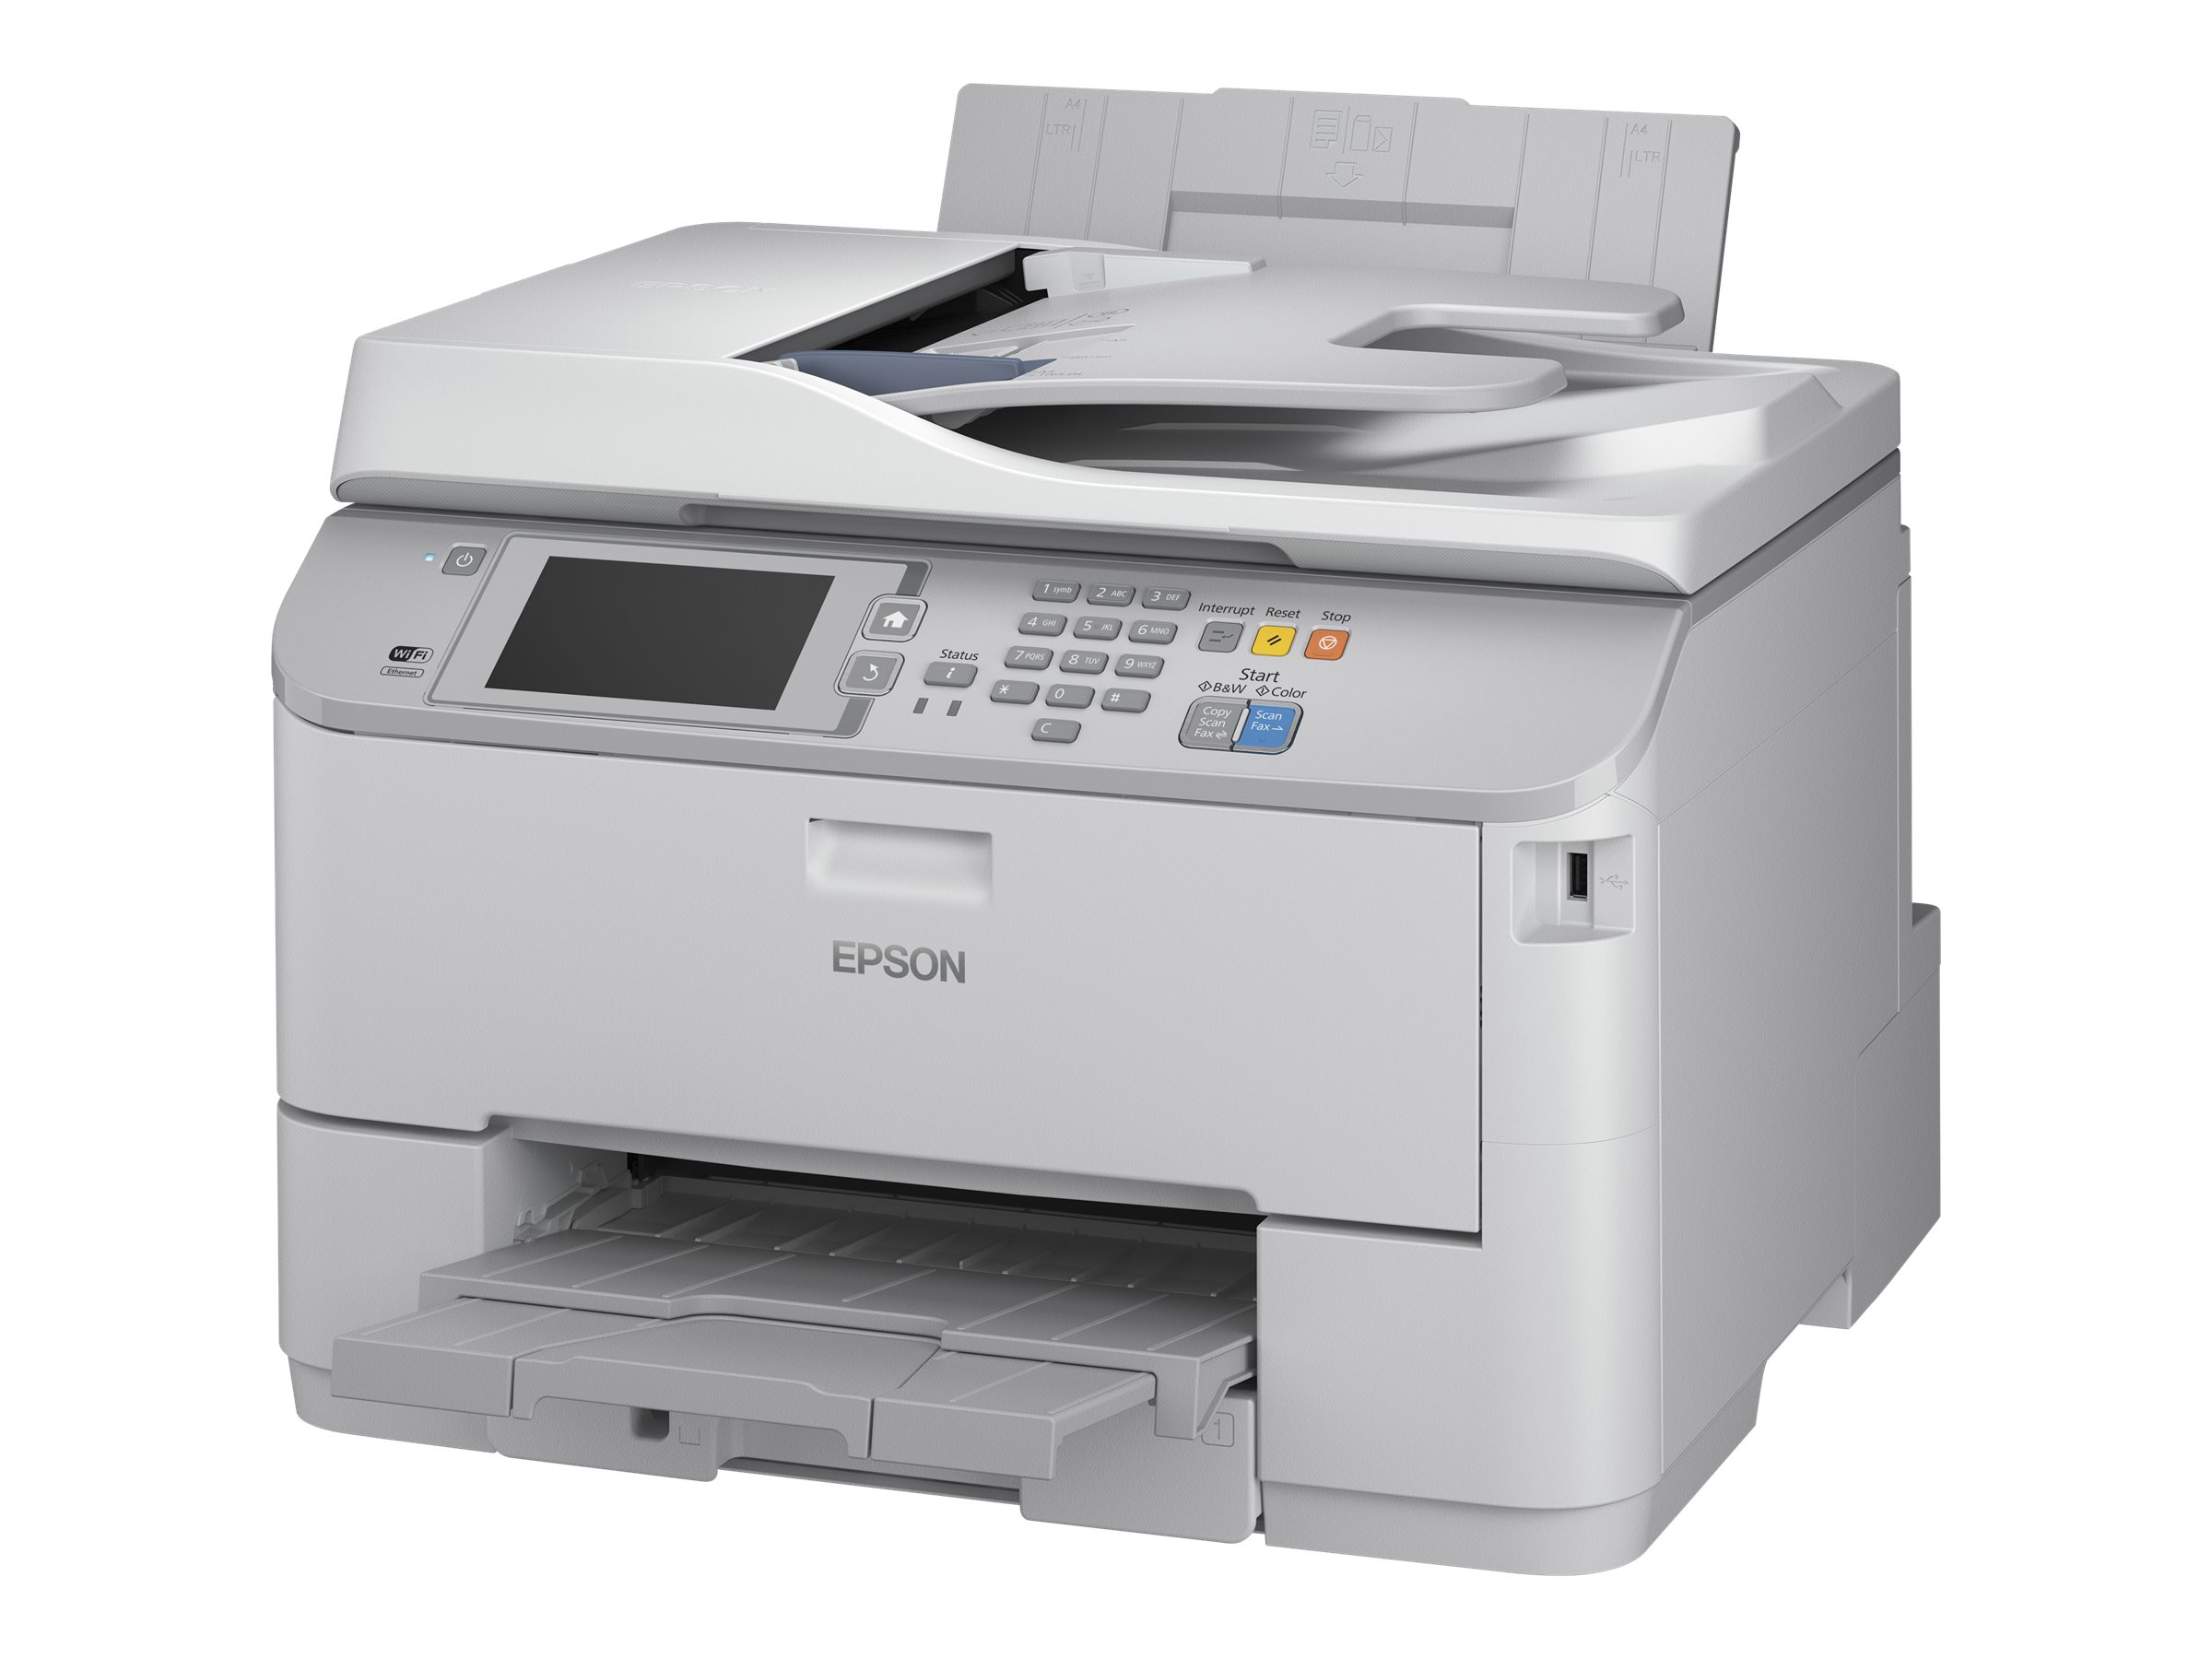 Epson WorkForce Pro WF-M5690DWF BAM - Multifunktionsdrucker - s/w - Tintenstrahl - Letter A (216 x 279 mm) (Original) - A4/Legal (Medien)